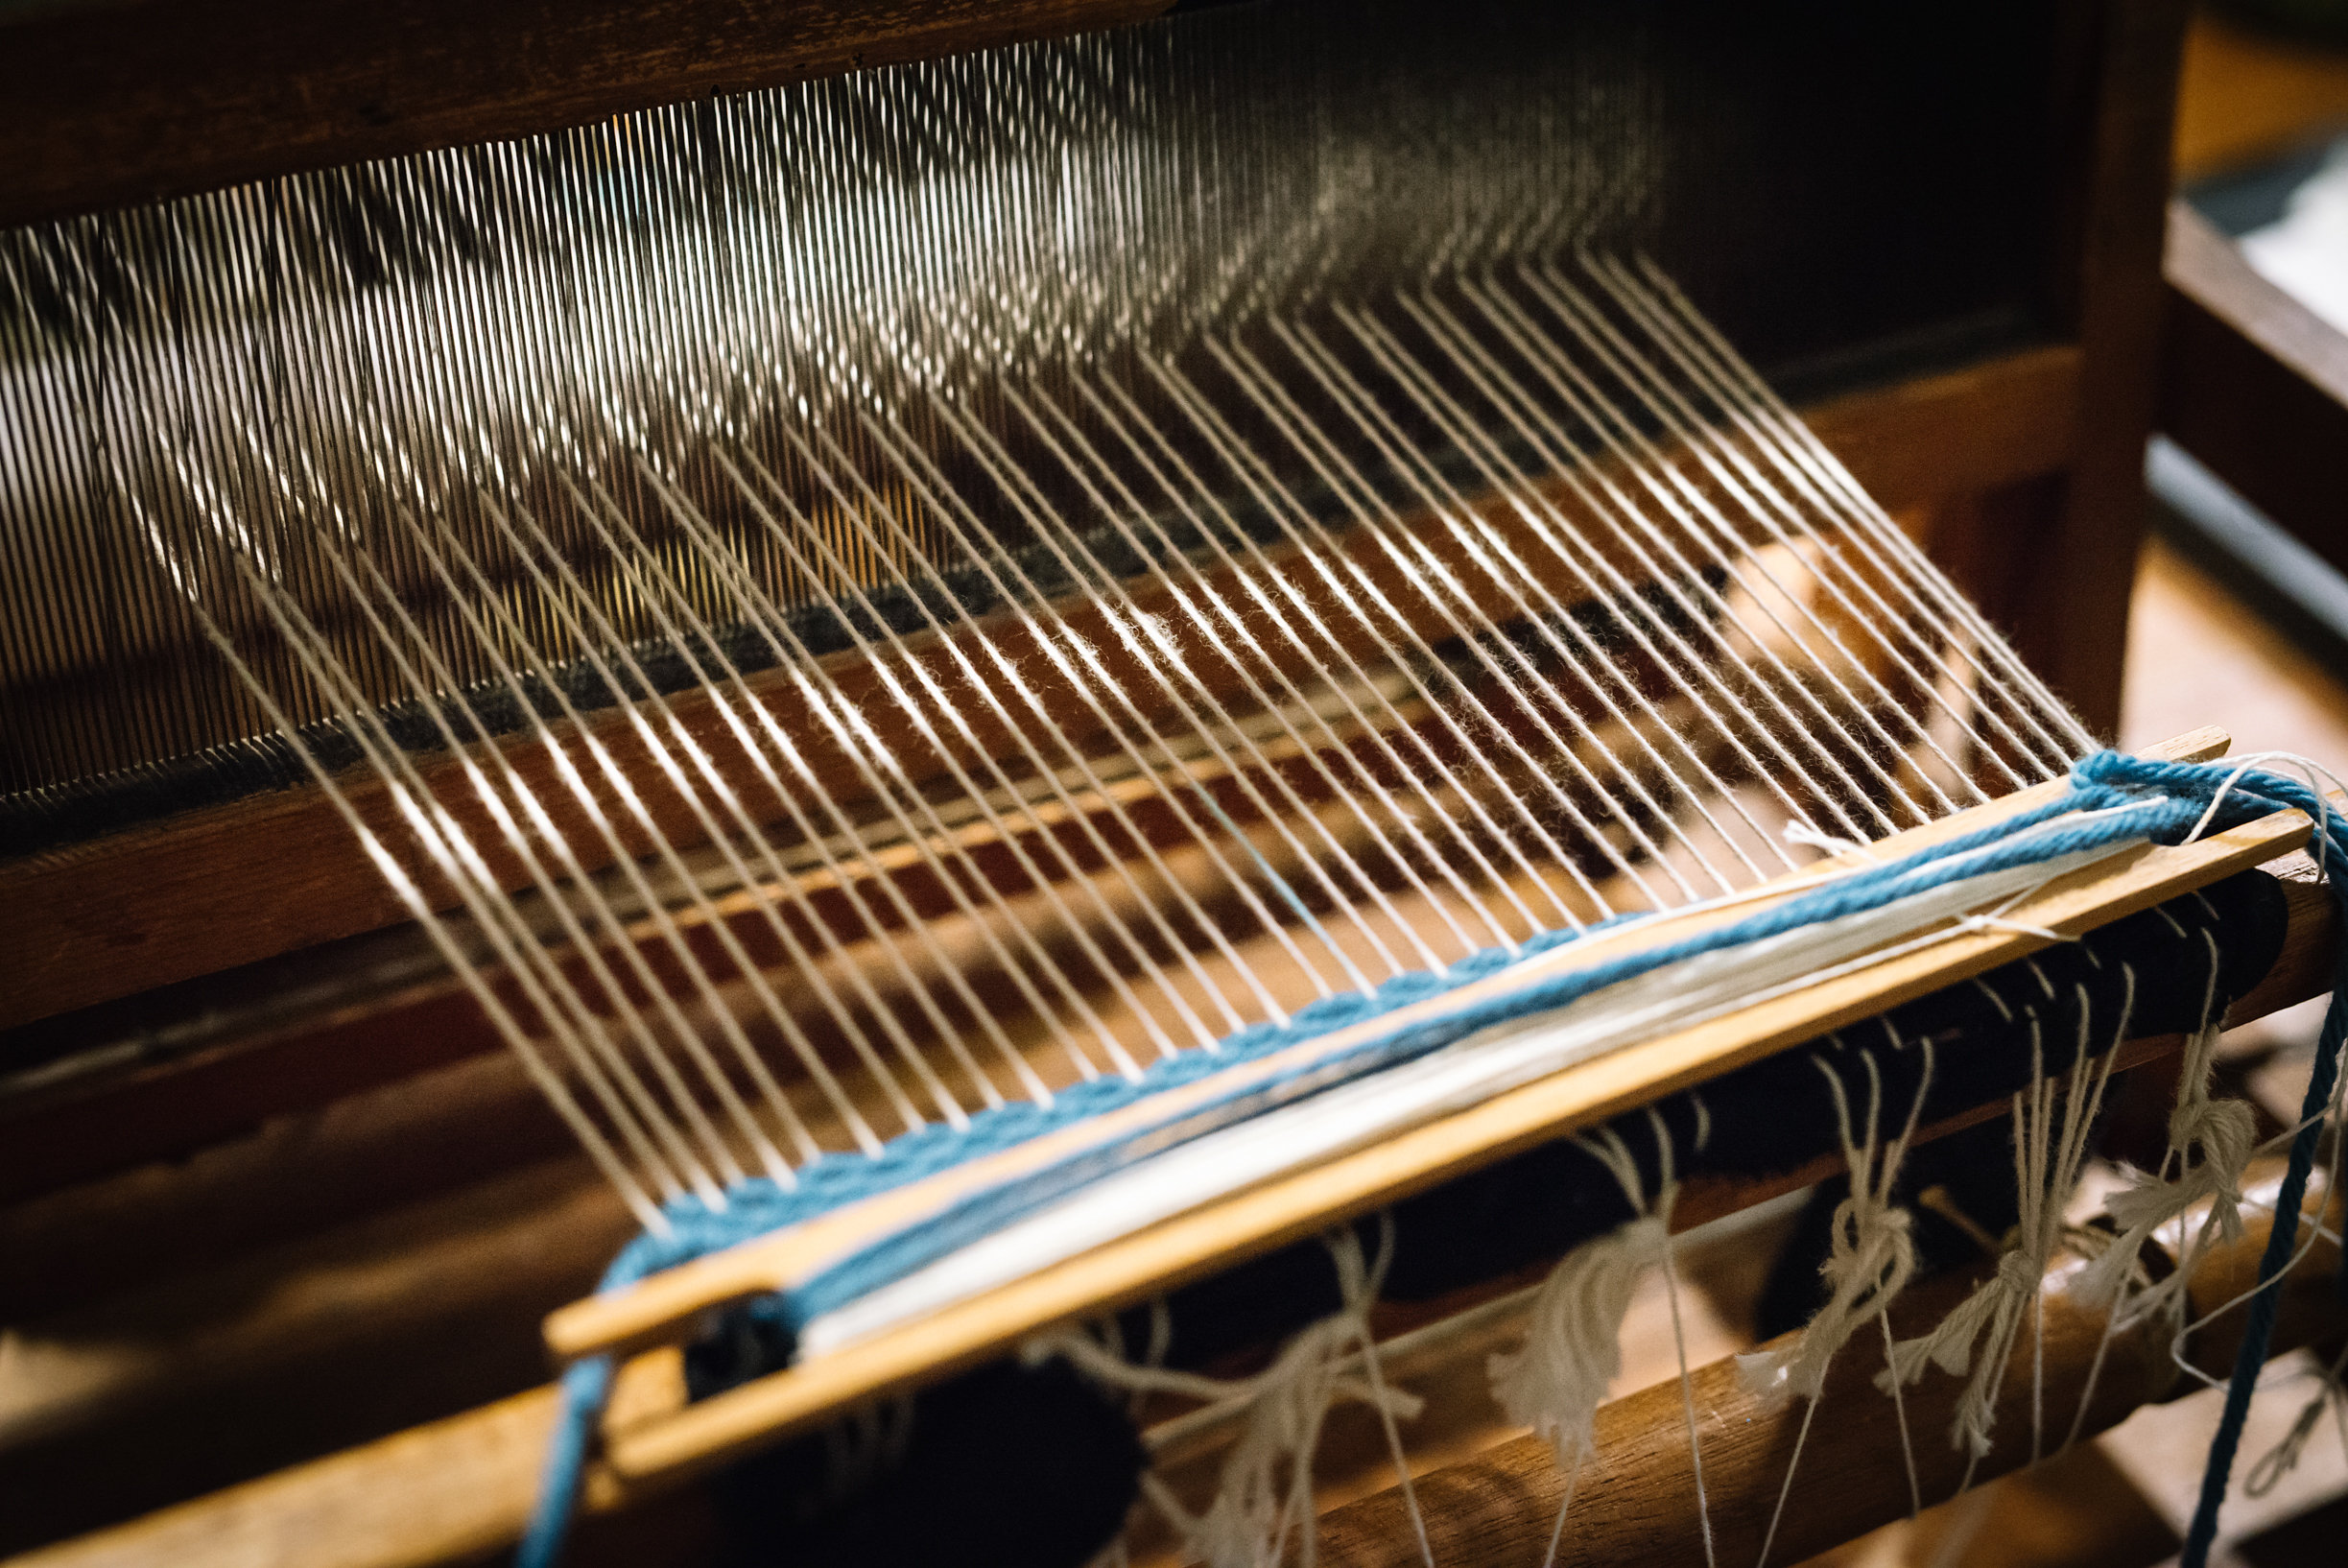 PYHII-Weaving_31.jpg